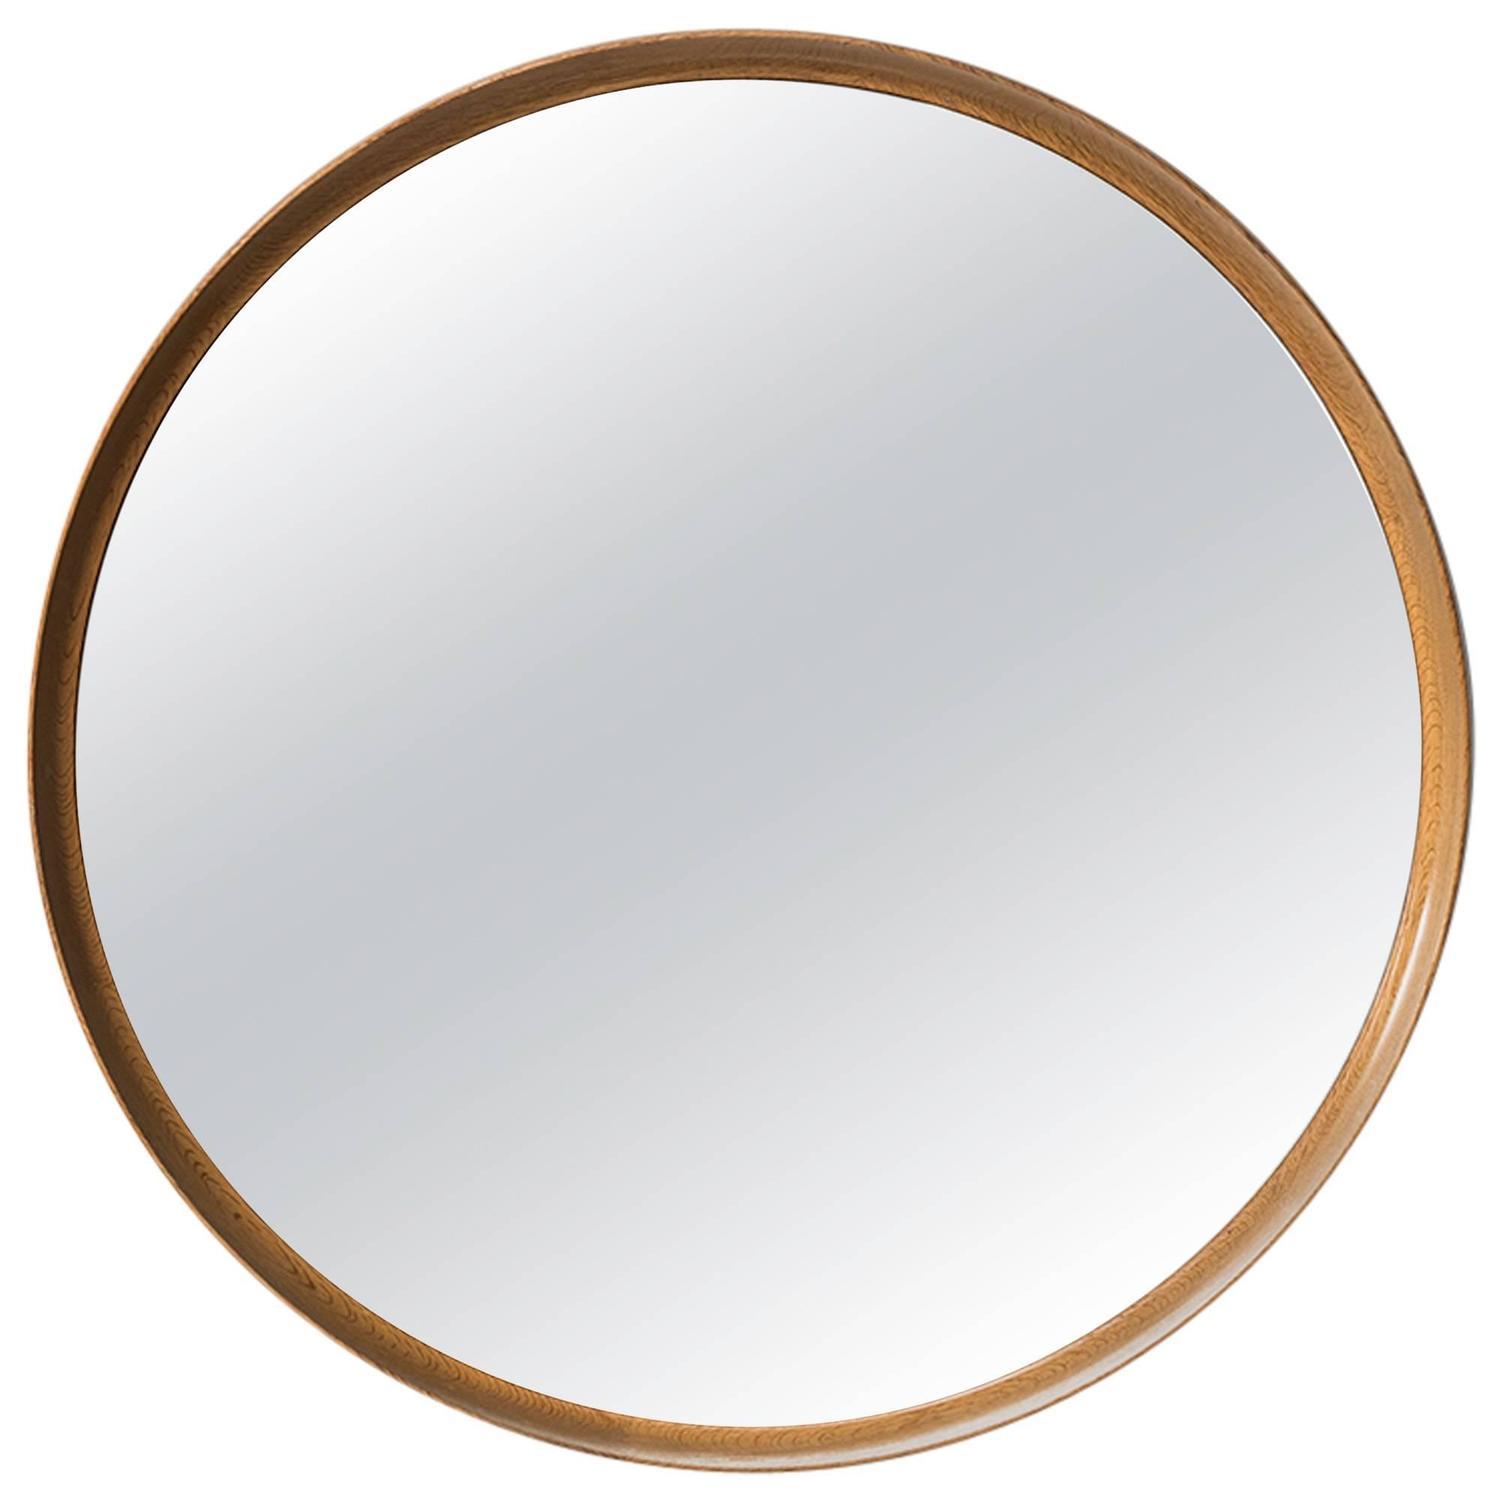 Uno and sten kristiansson large round mirror by luxus in for Large round mirrors for sale